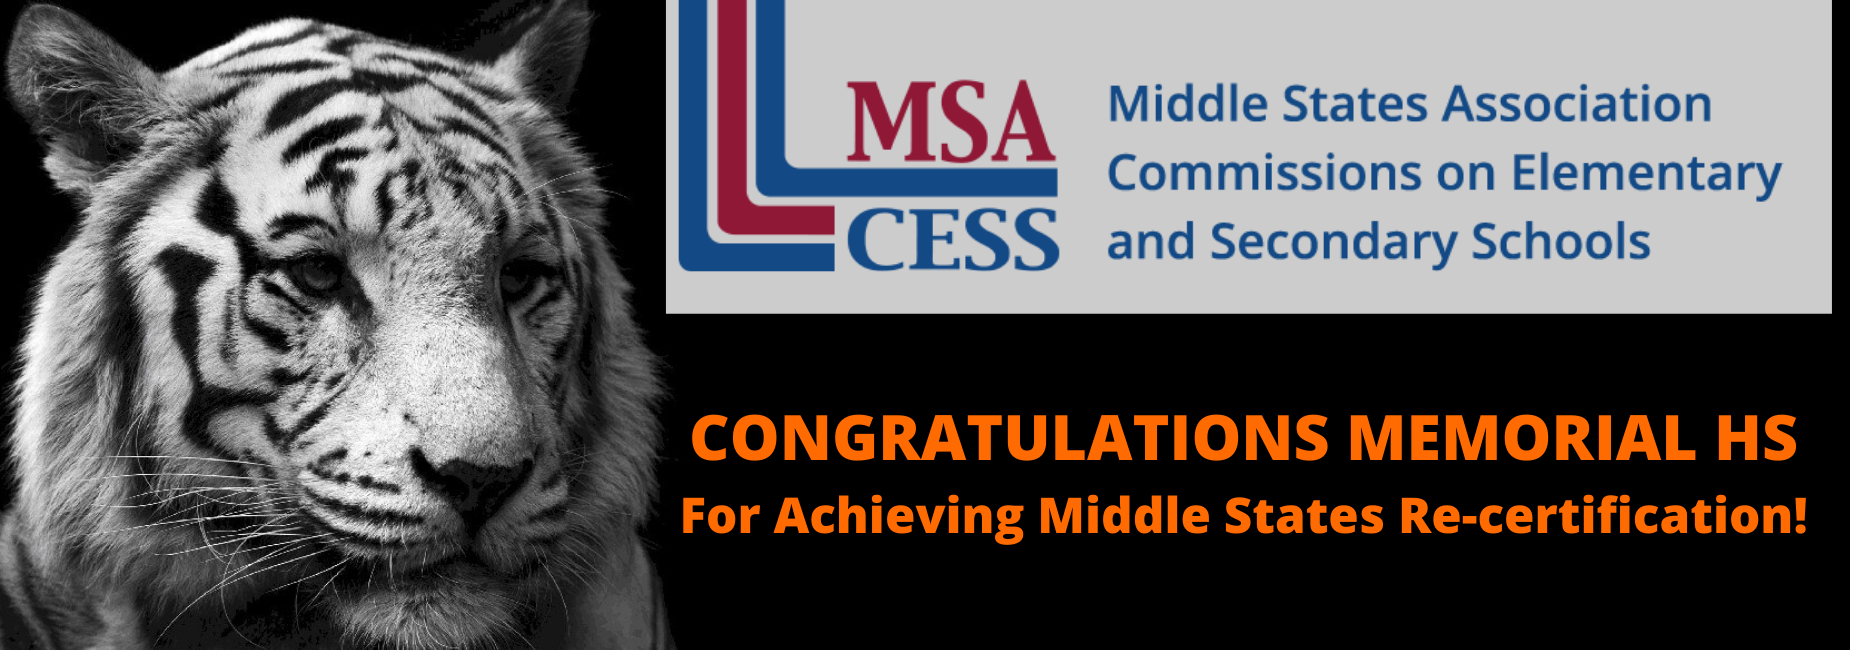 CONGRATULATIONS MEMORIAL HS For Achieving Middle States Re-certification!